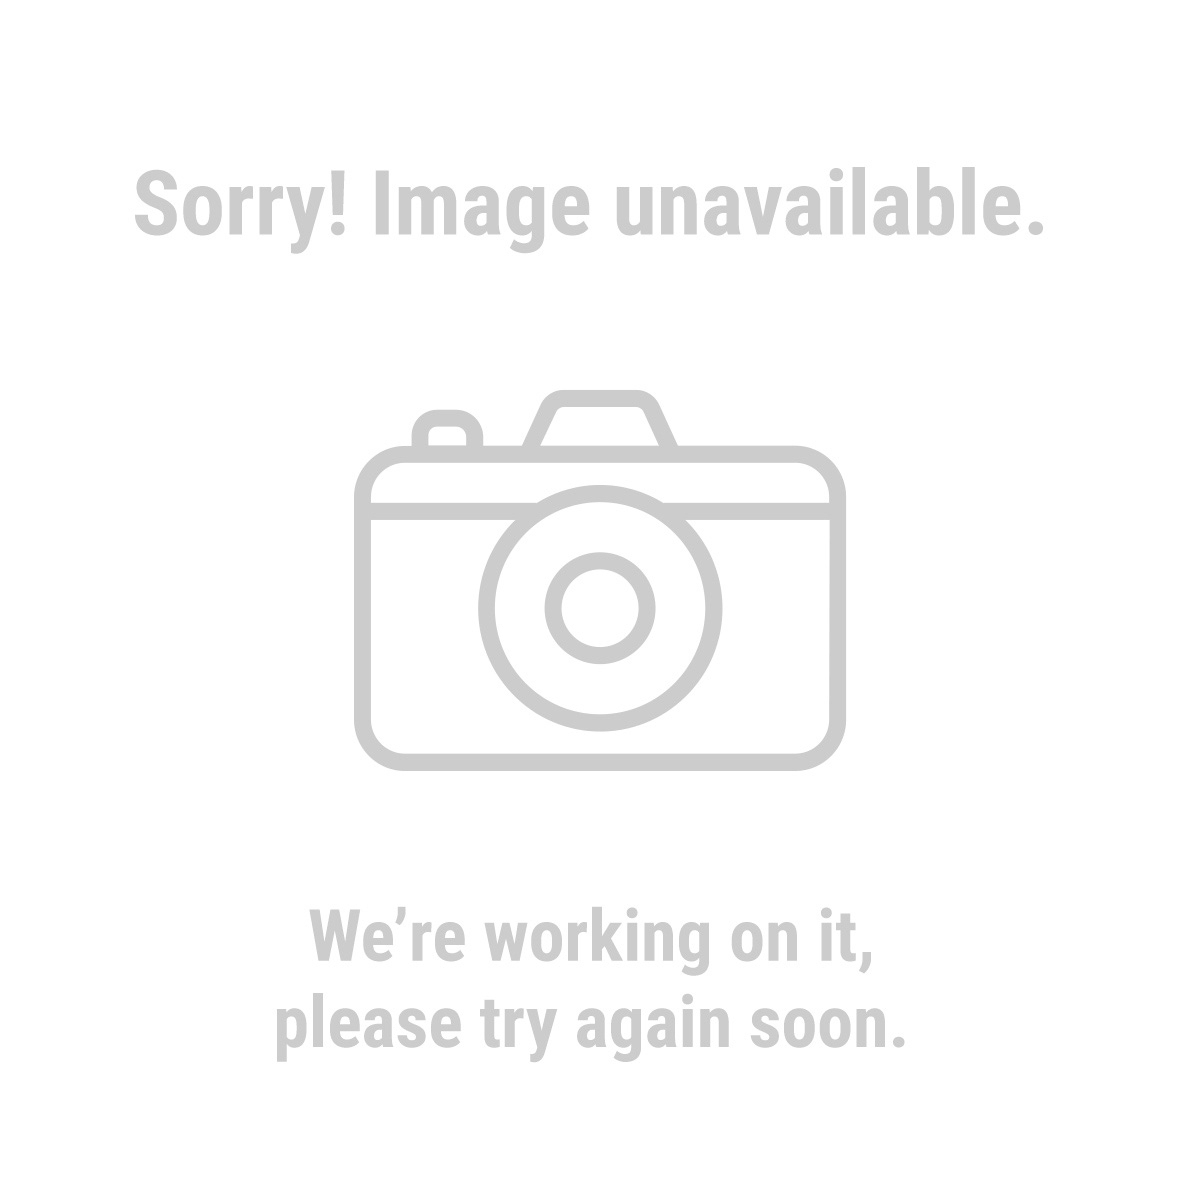 Cen-Tech 61839 Digital Inspection Camera